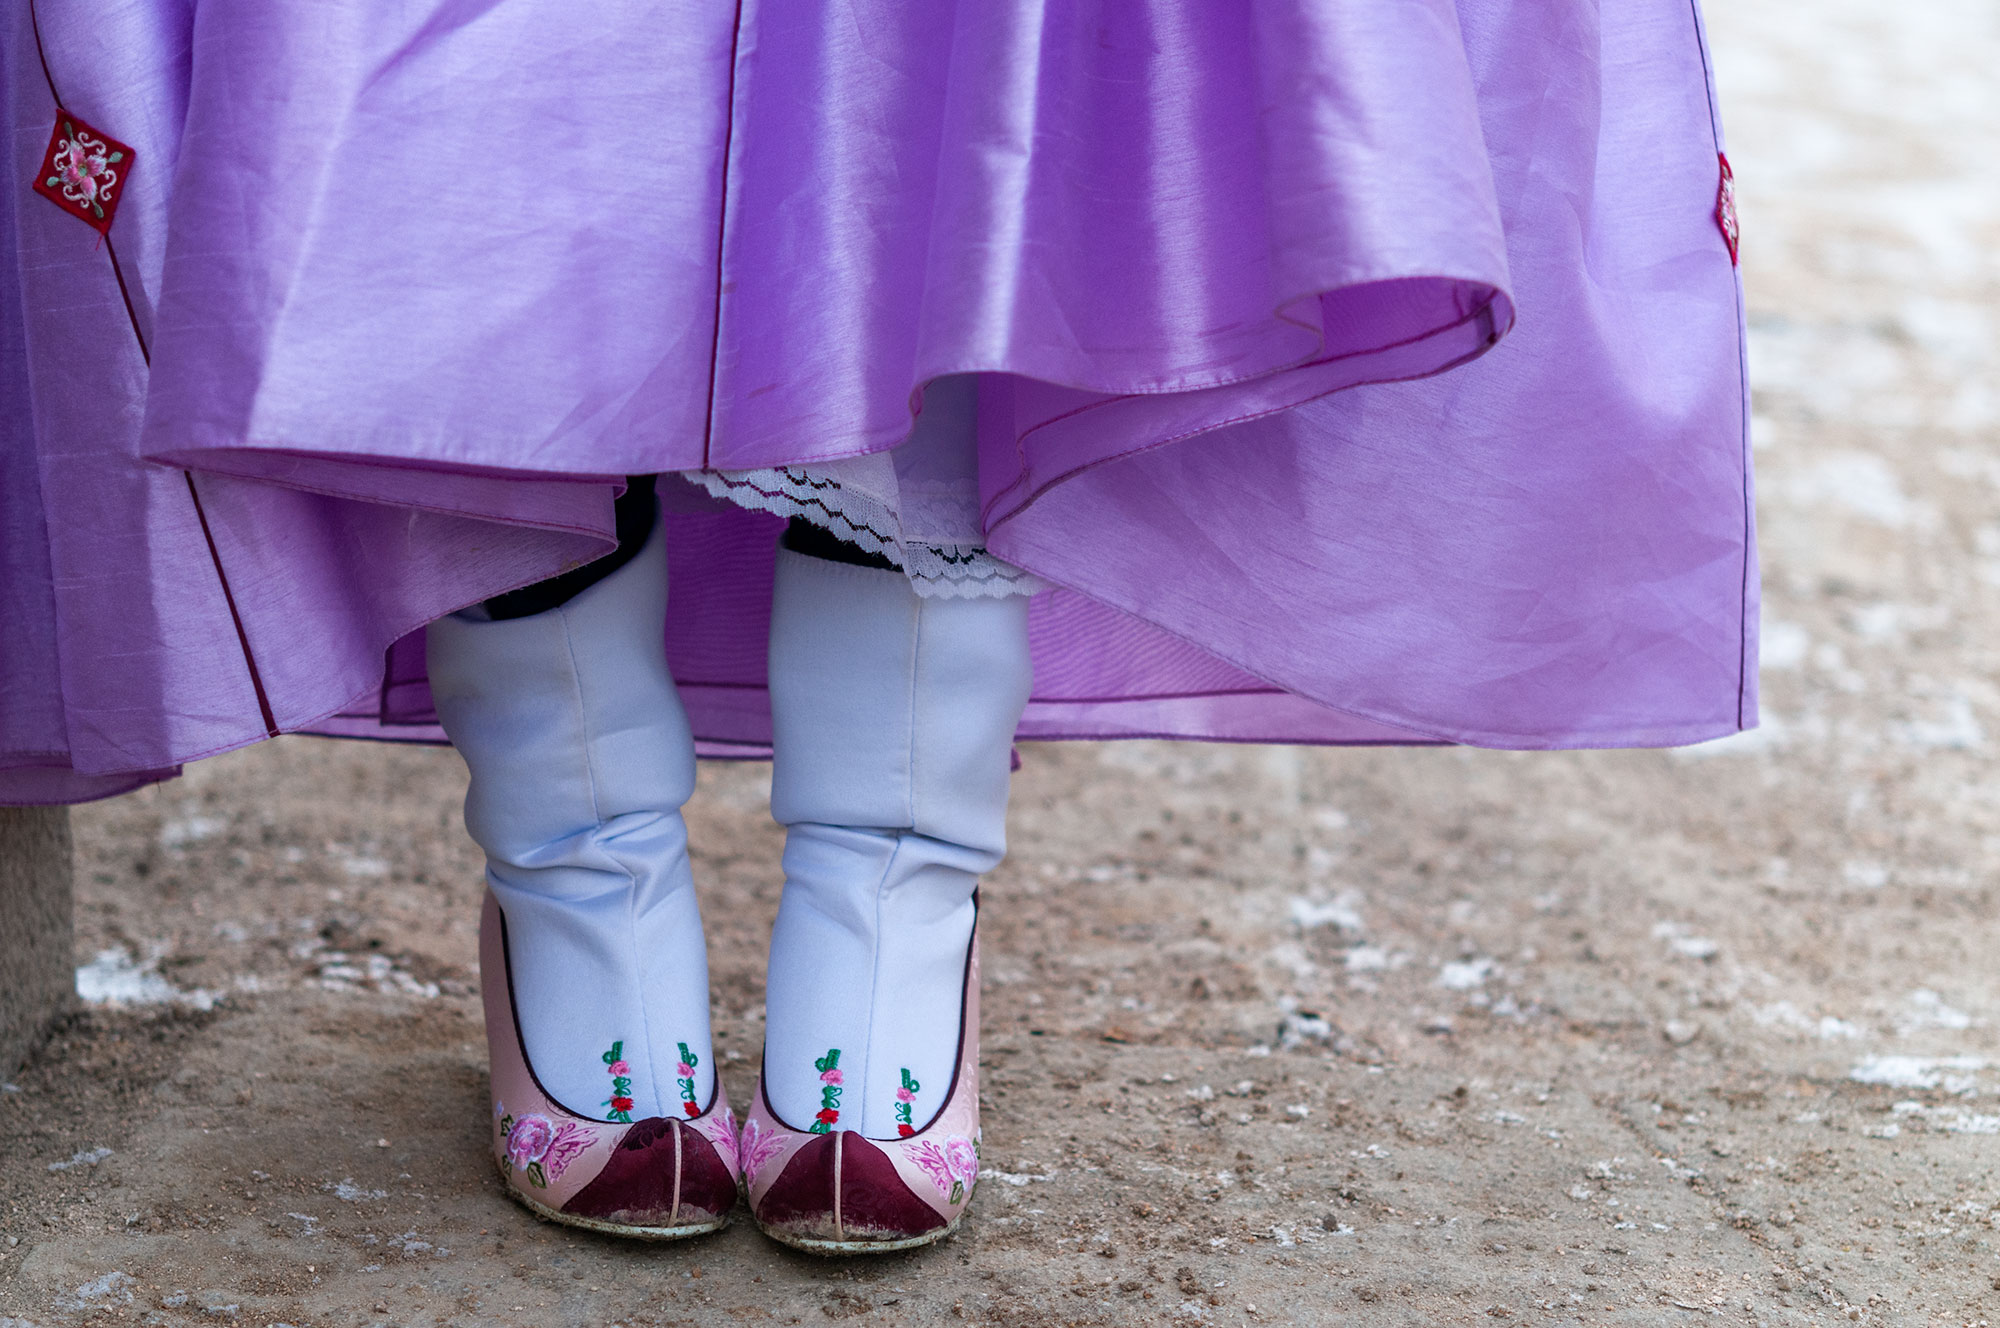 Photography of the hanbok shoes worn by a korean girl in  Changgyeonggung Palace in South Korea.